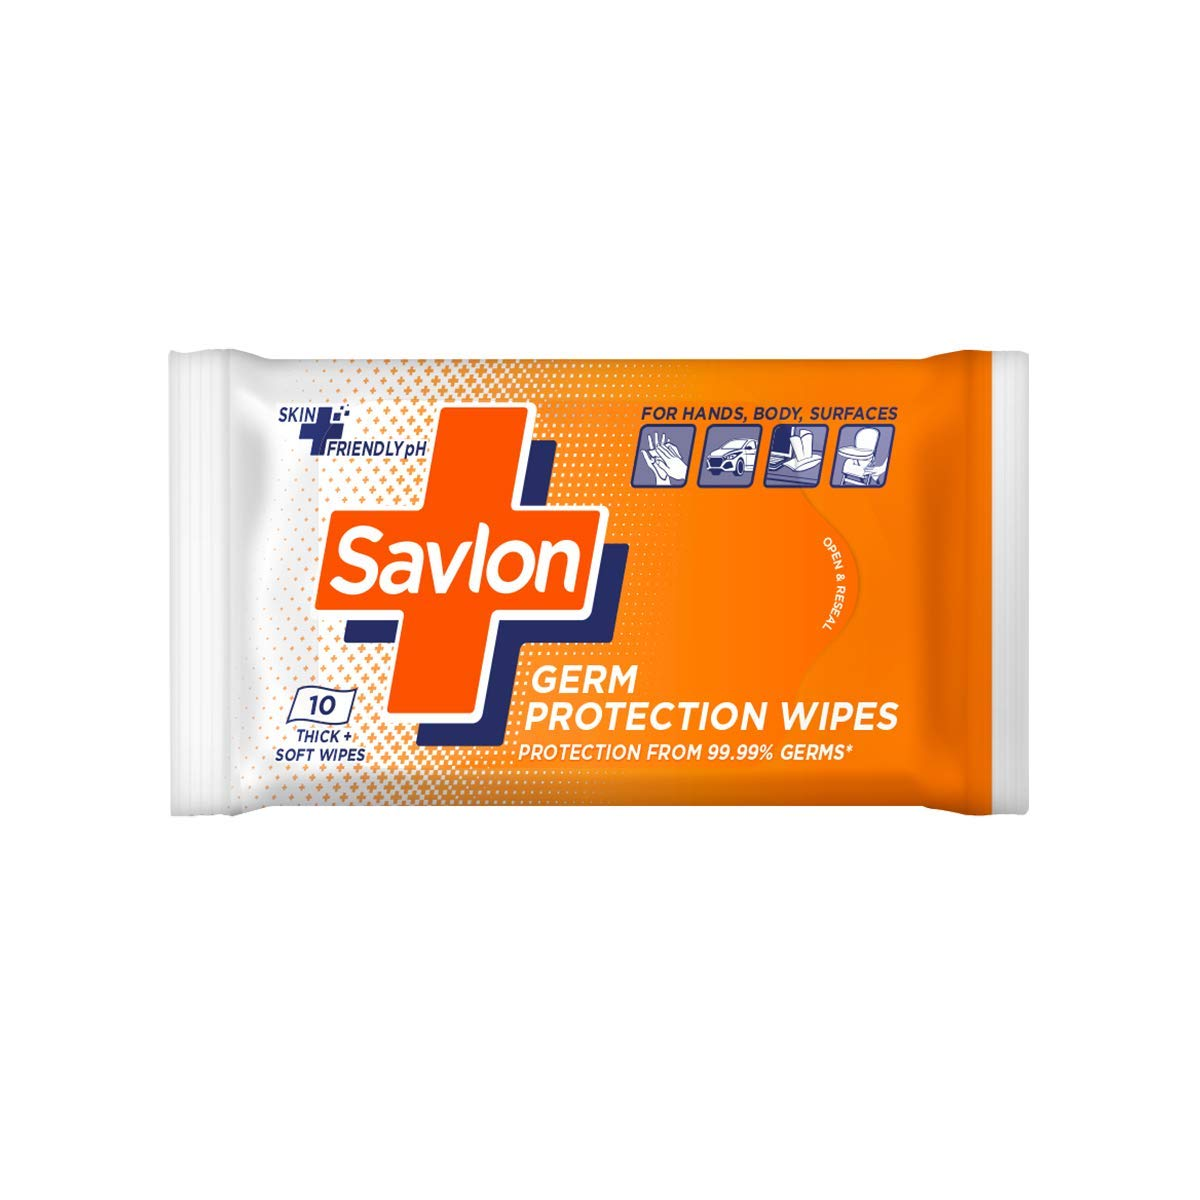 SAVLON GERM PROTECTION WIPES 45/-